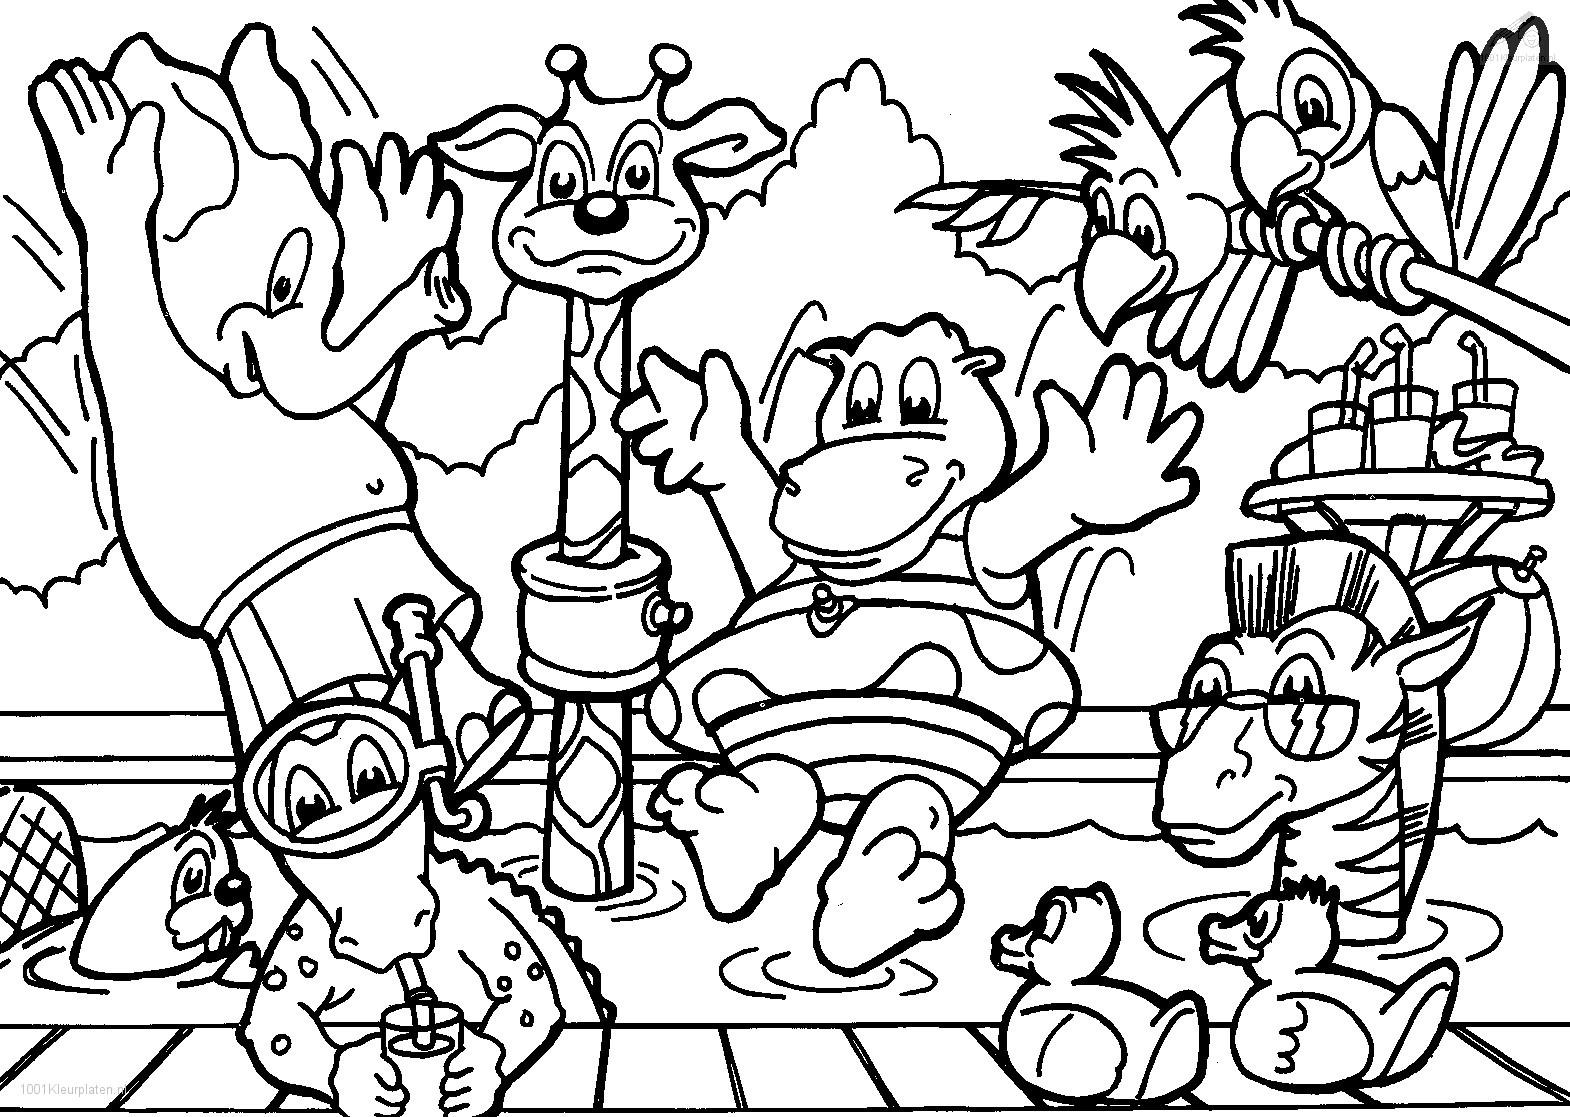 animals drawings to color safari coloring pages to download and print for free drawings animals to color